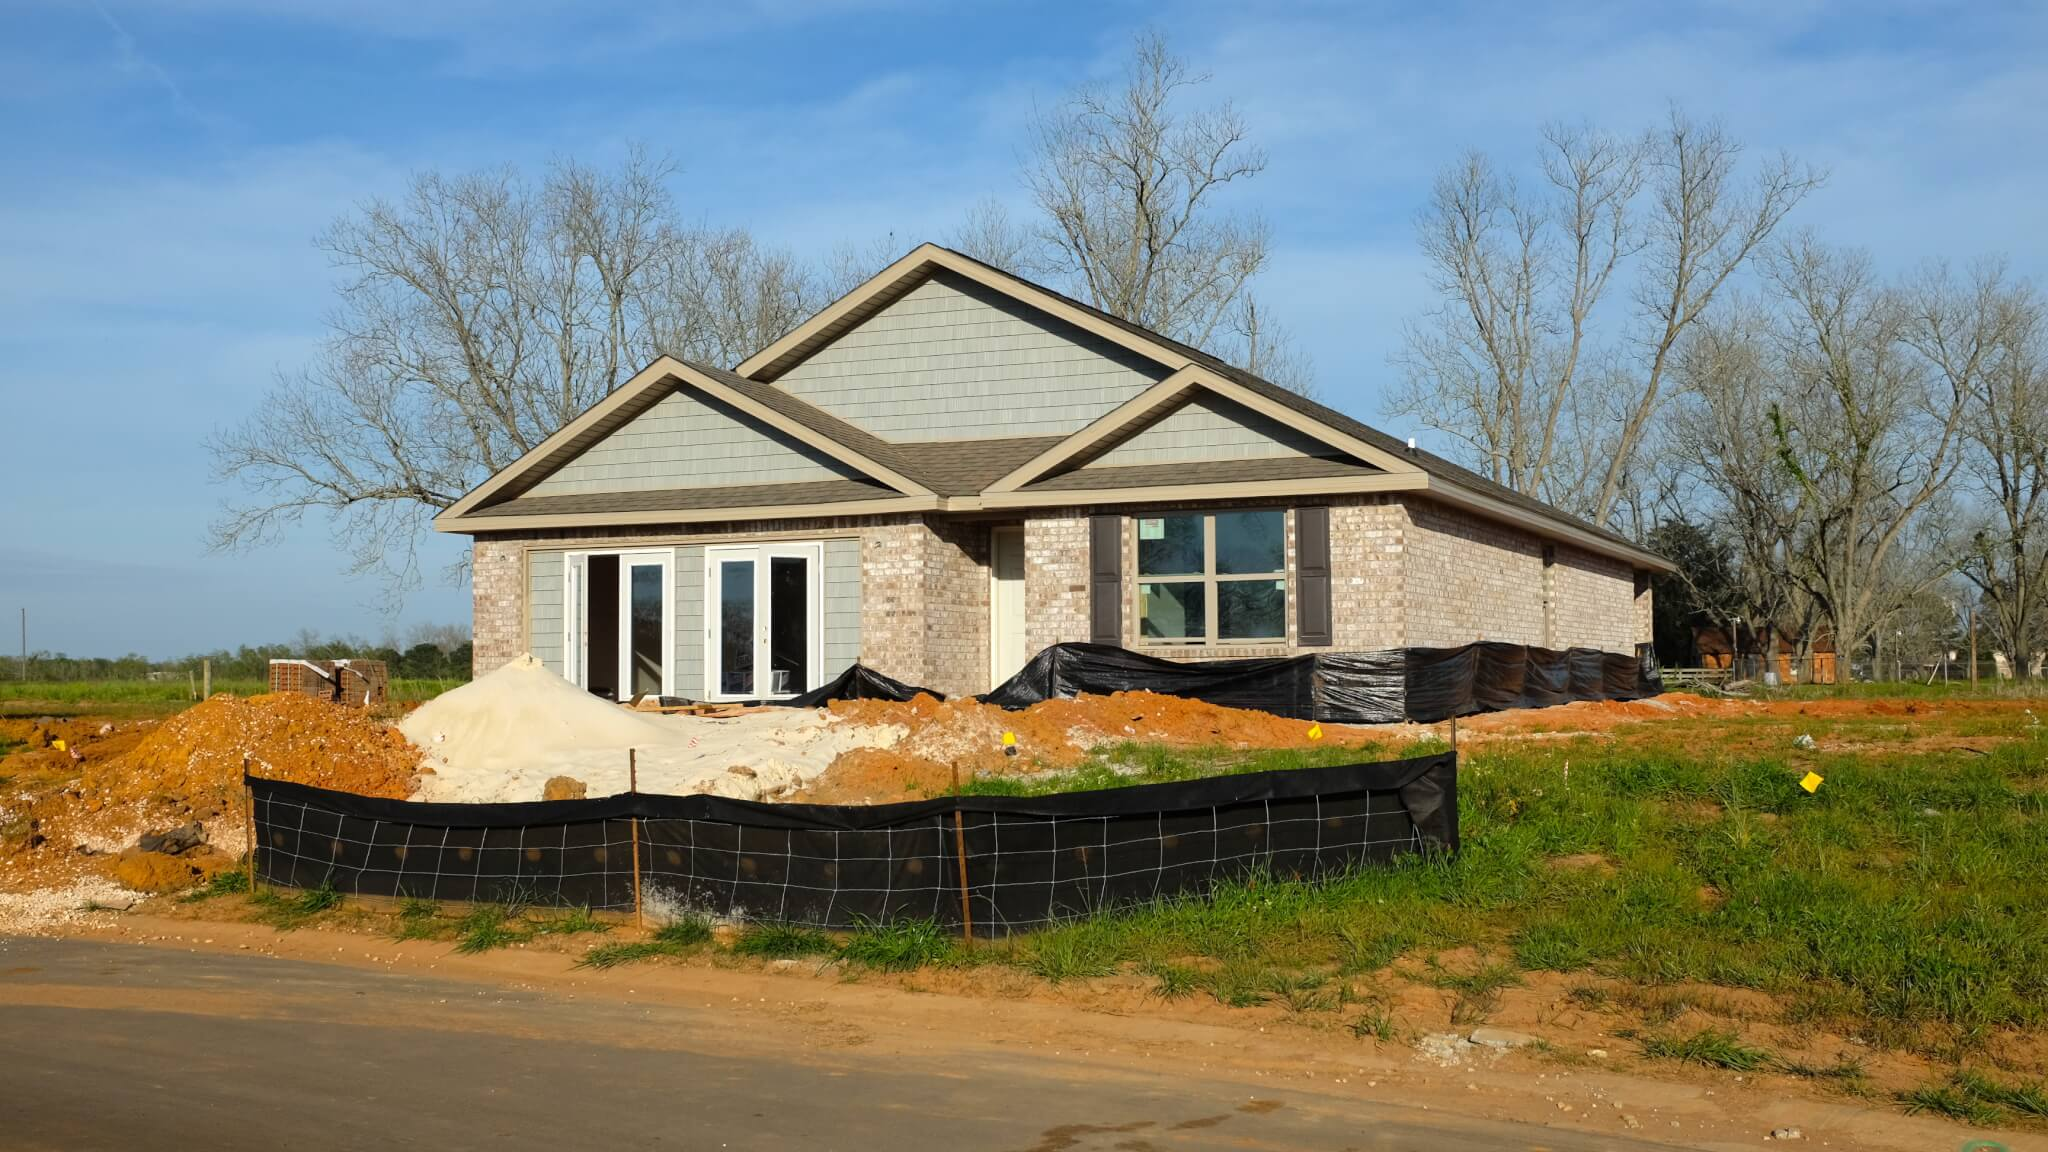 Winged Foot New Homes by DR Horton in Daphne Alabama - new home under construction